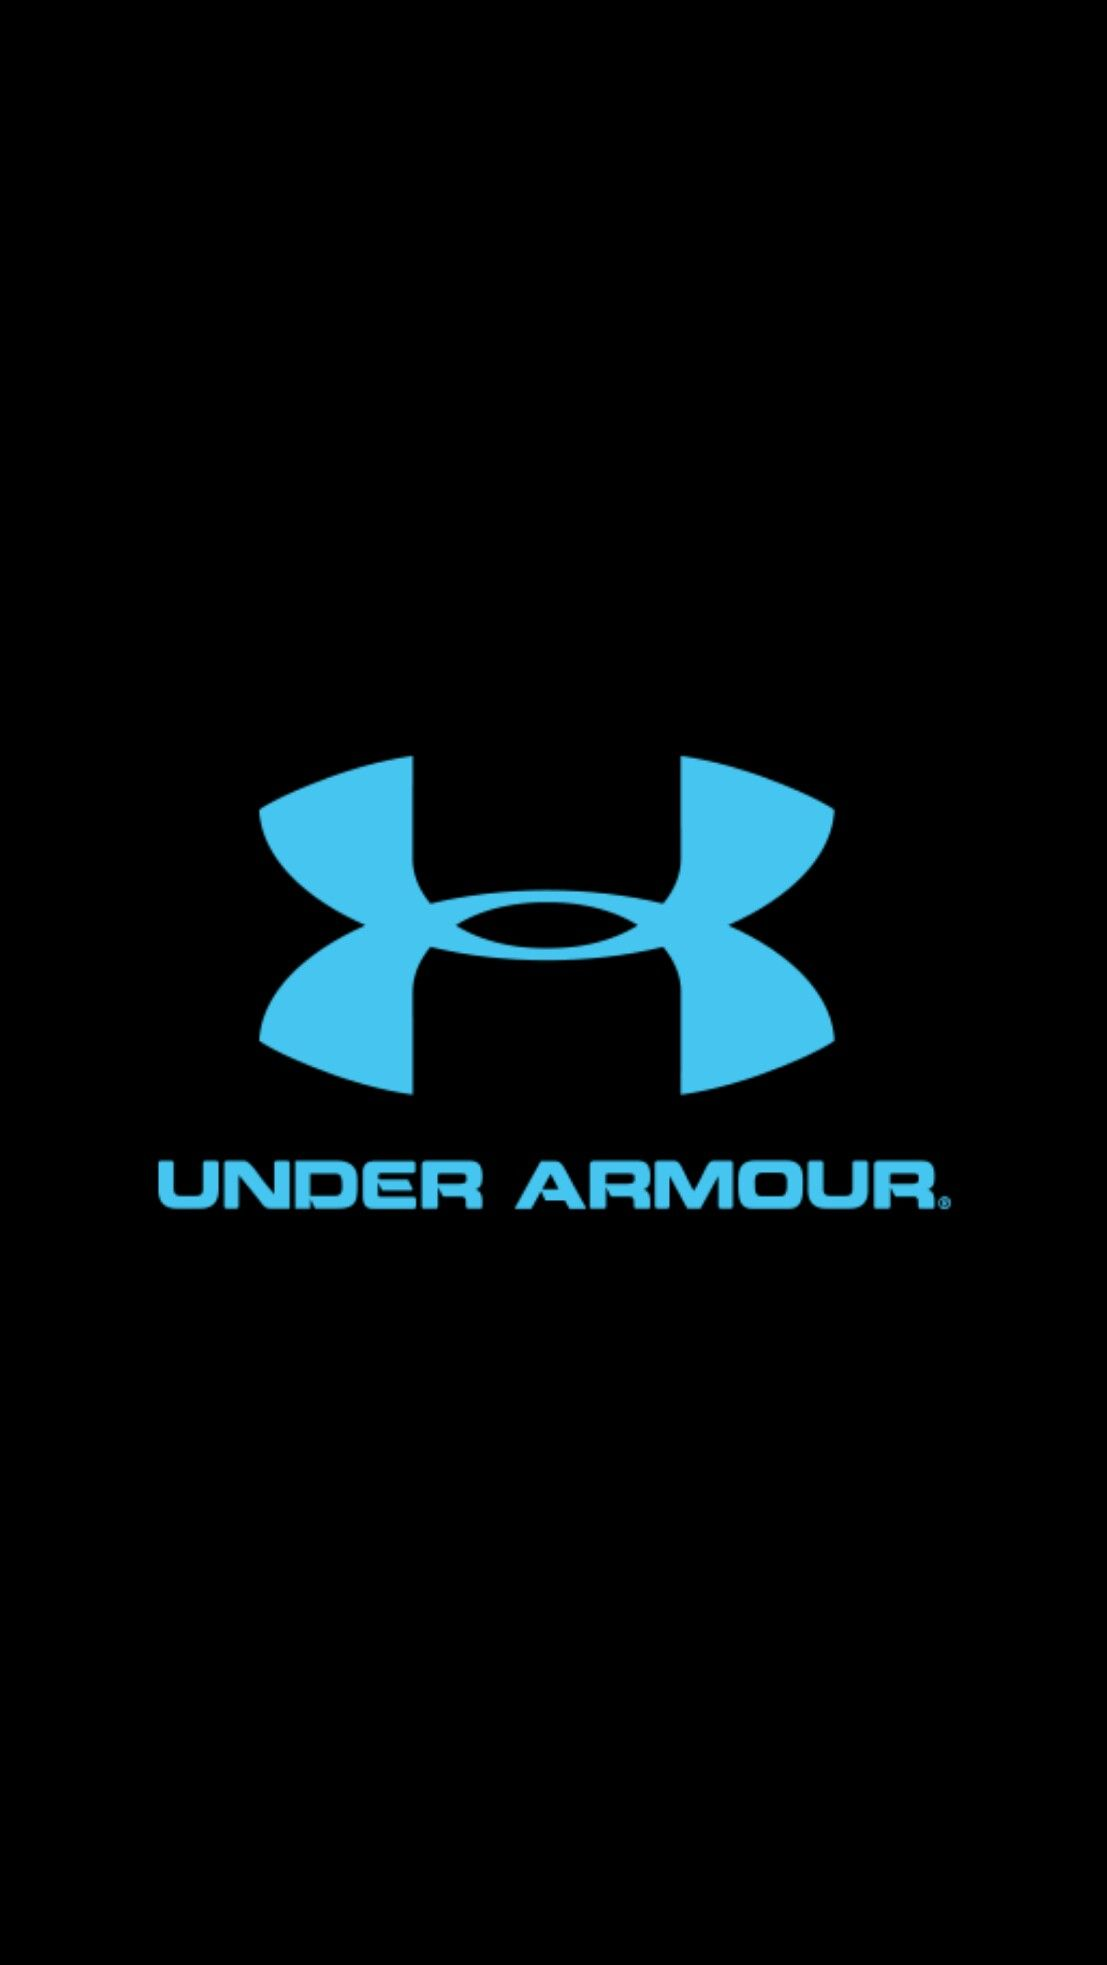 Pin by Laken Ruggles on Armours | Under armour wallpaper ...